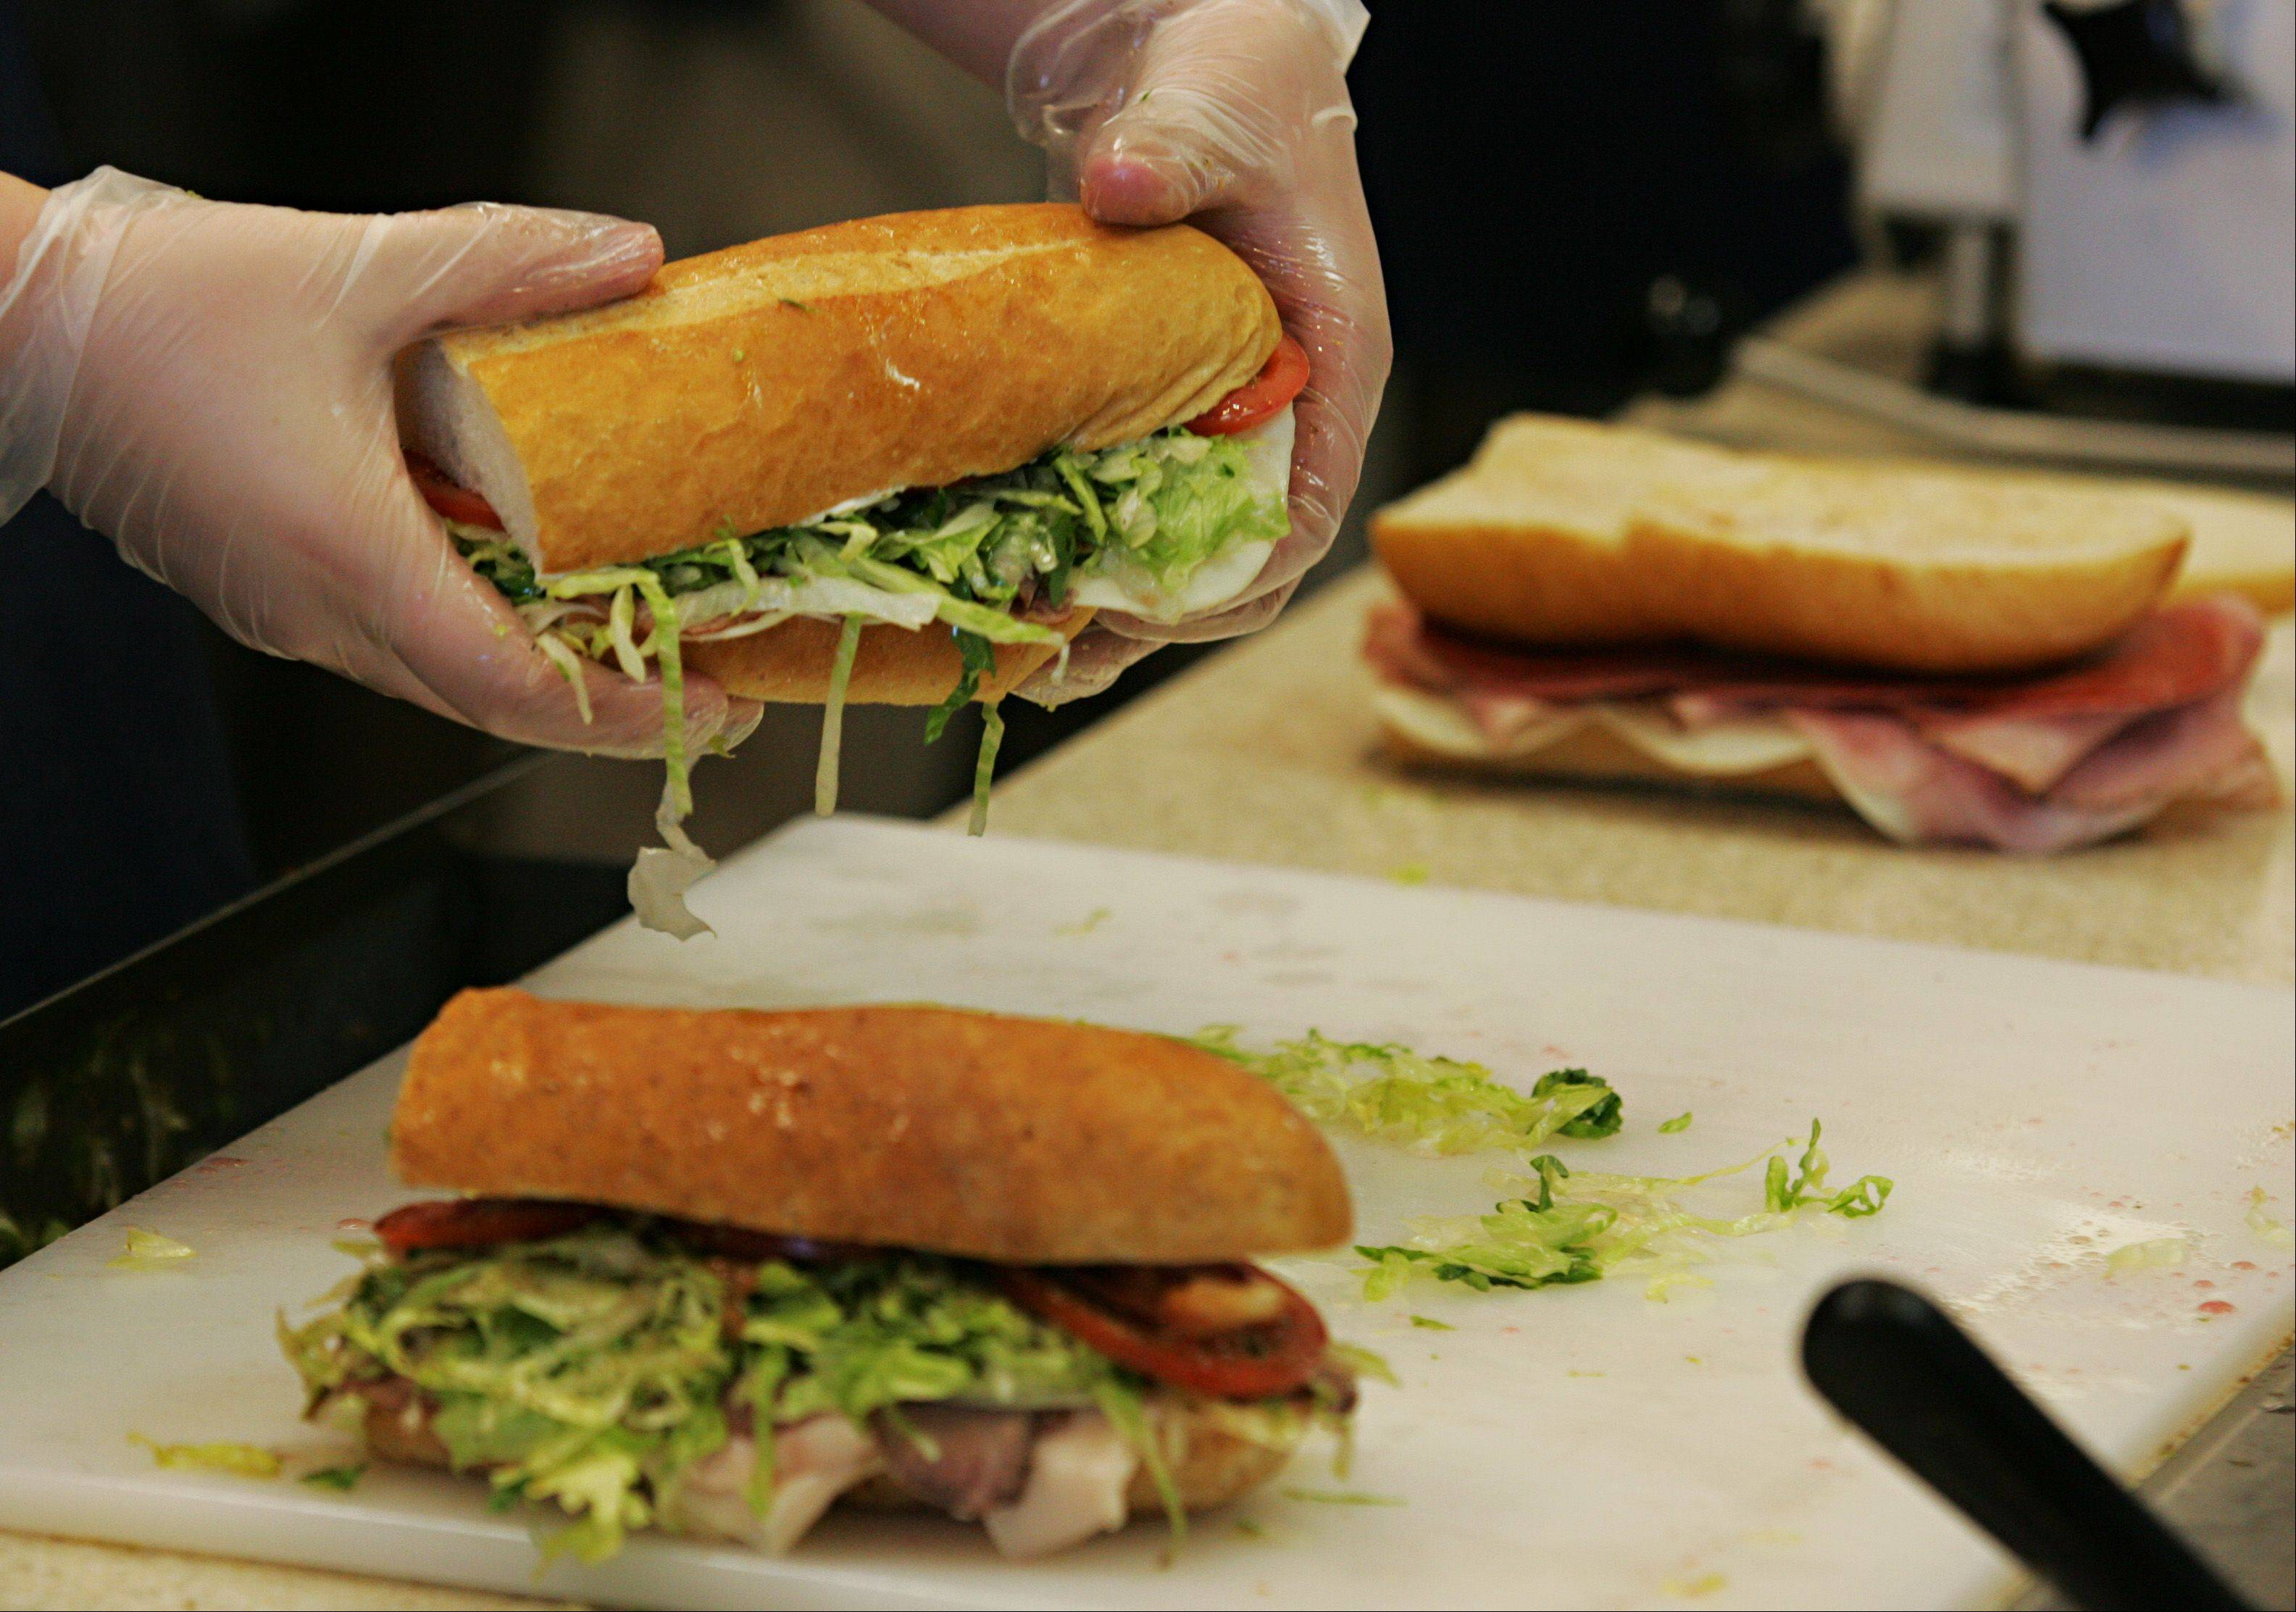 Jersey Mike�s Subs employee Matt Stickrod puts a sandwich together on the first day of business for the new location in South Elgin.